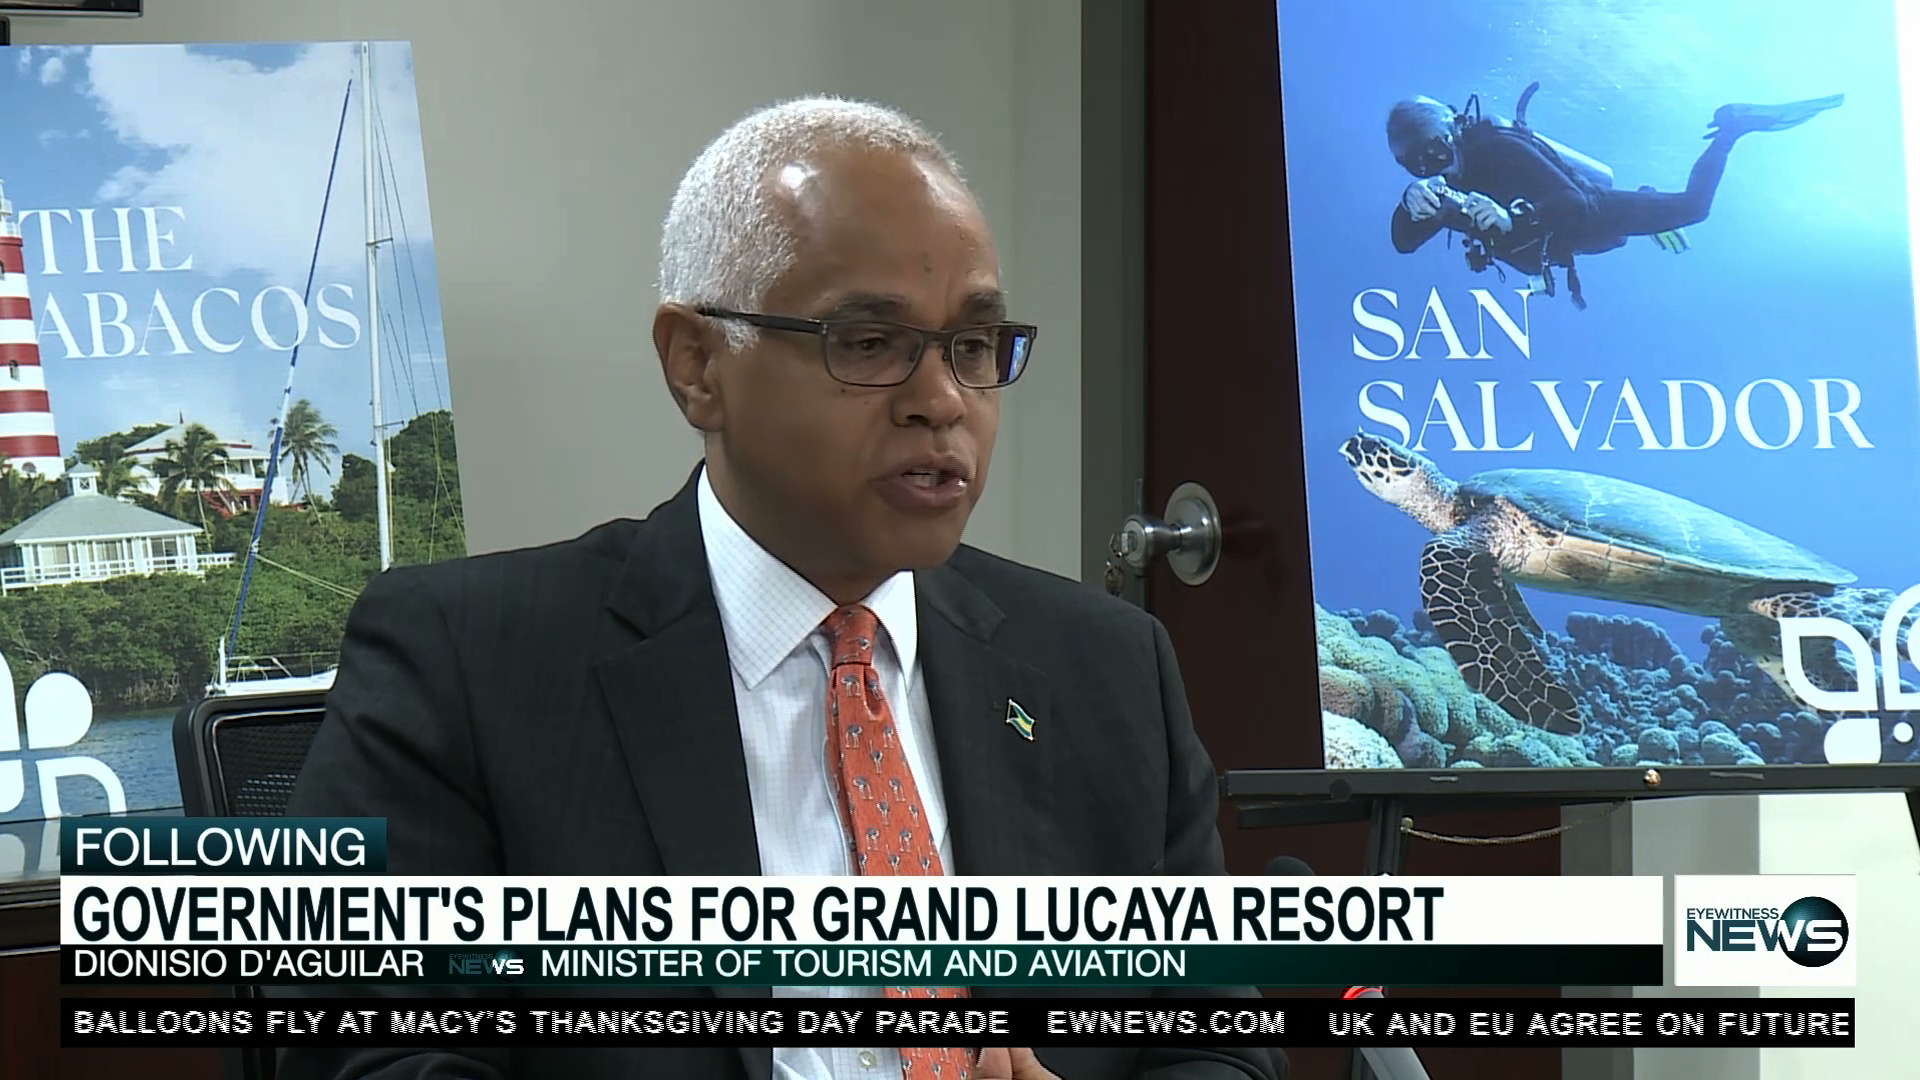 More than 20 express interest in Grand Lucayan Resort purchase